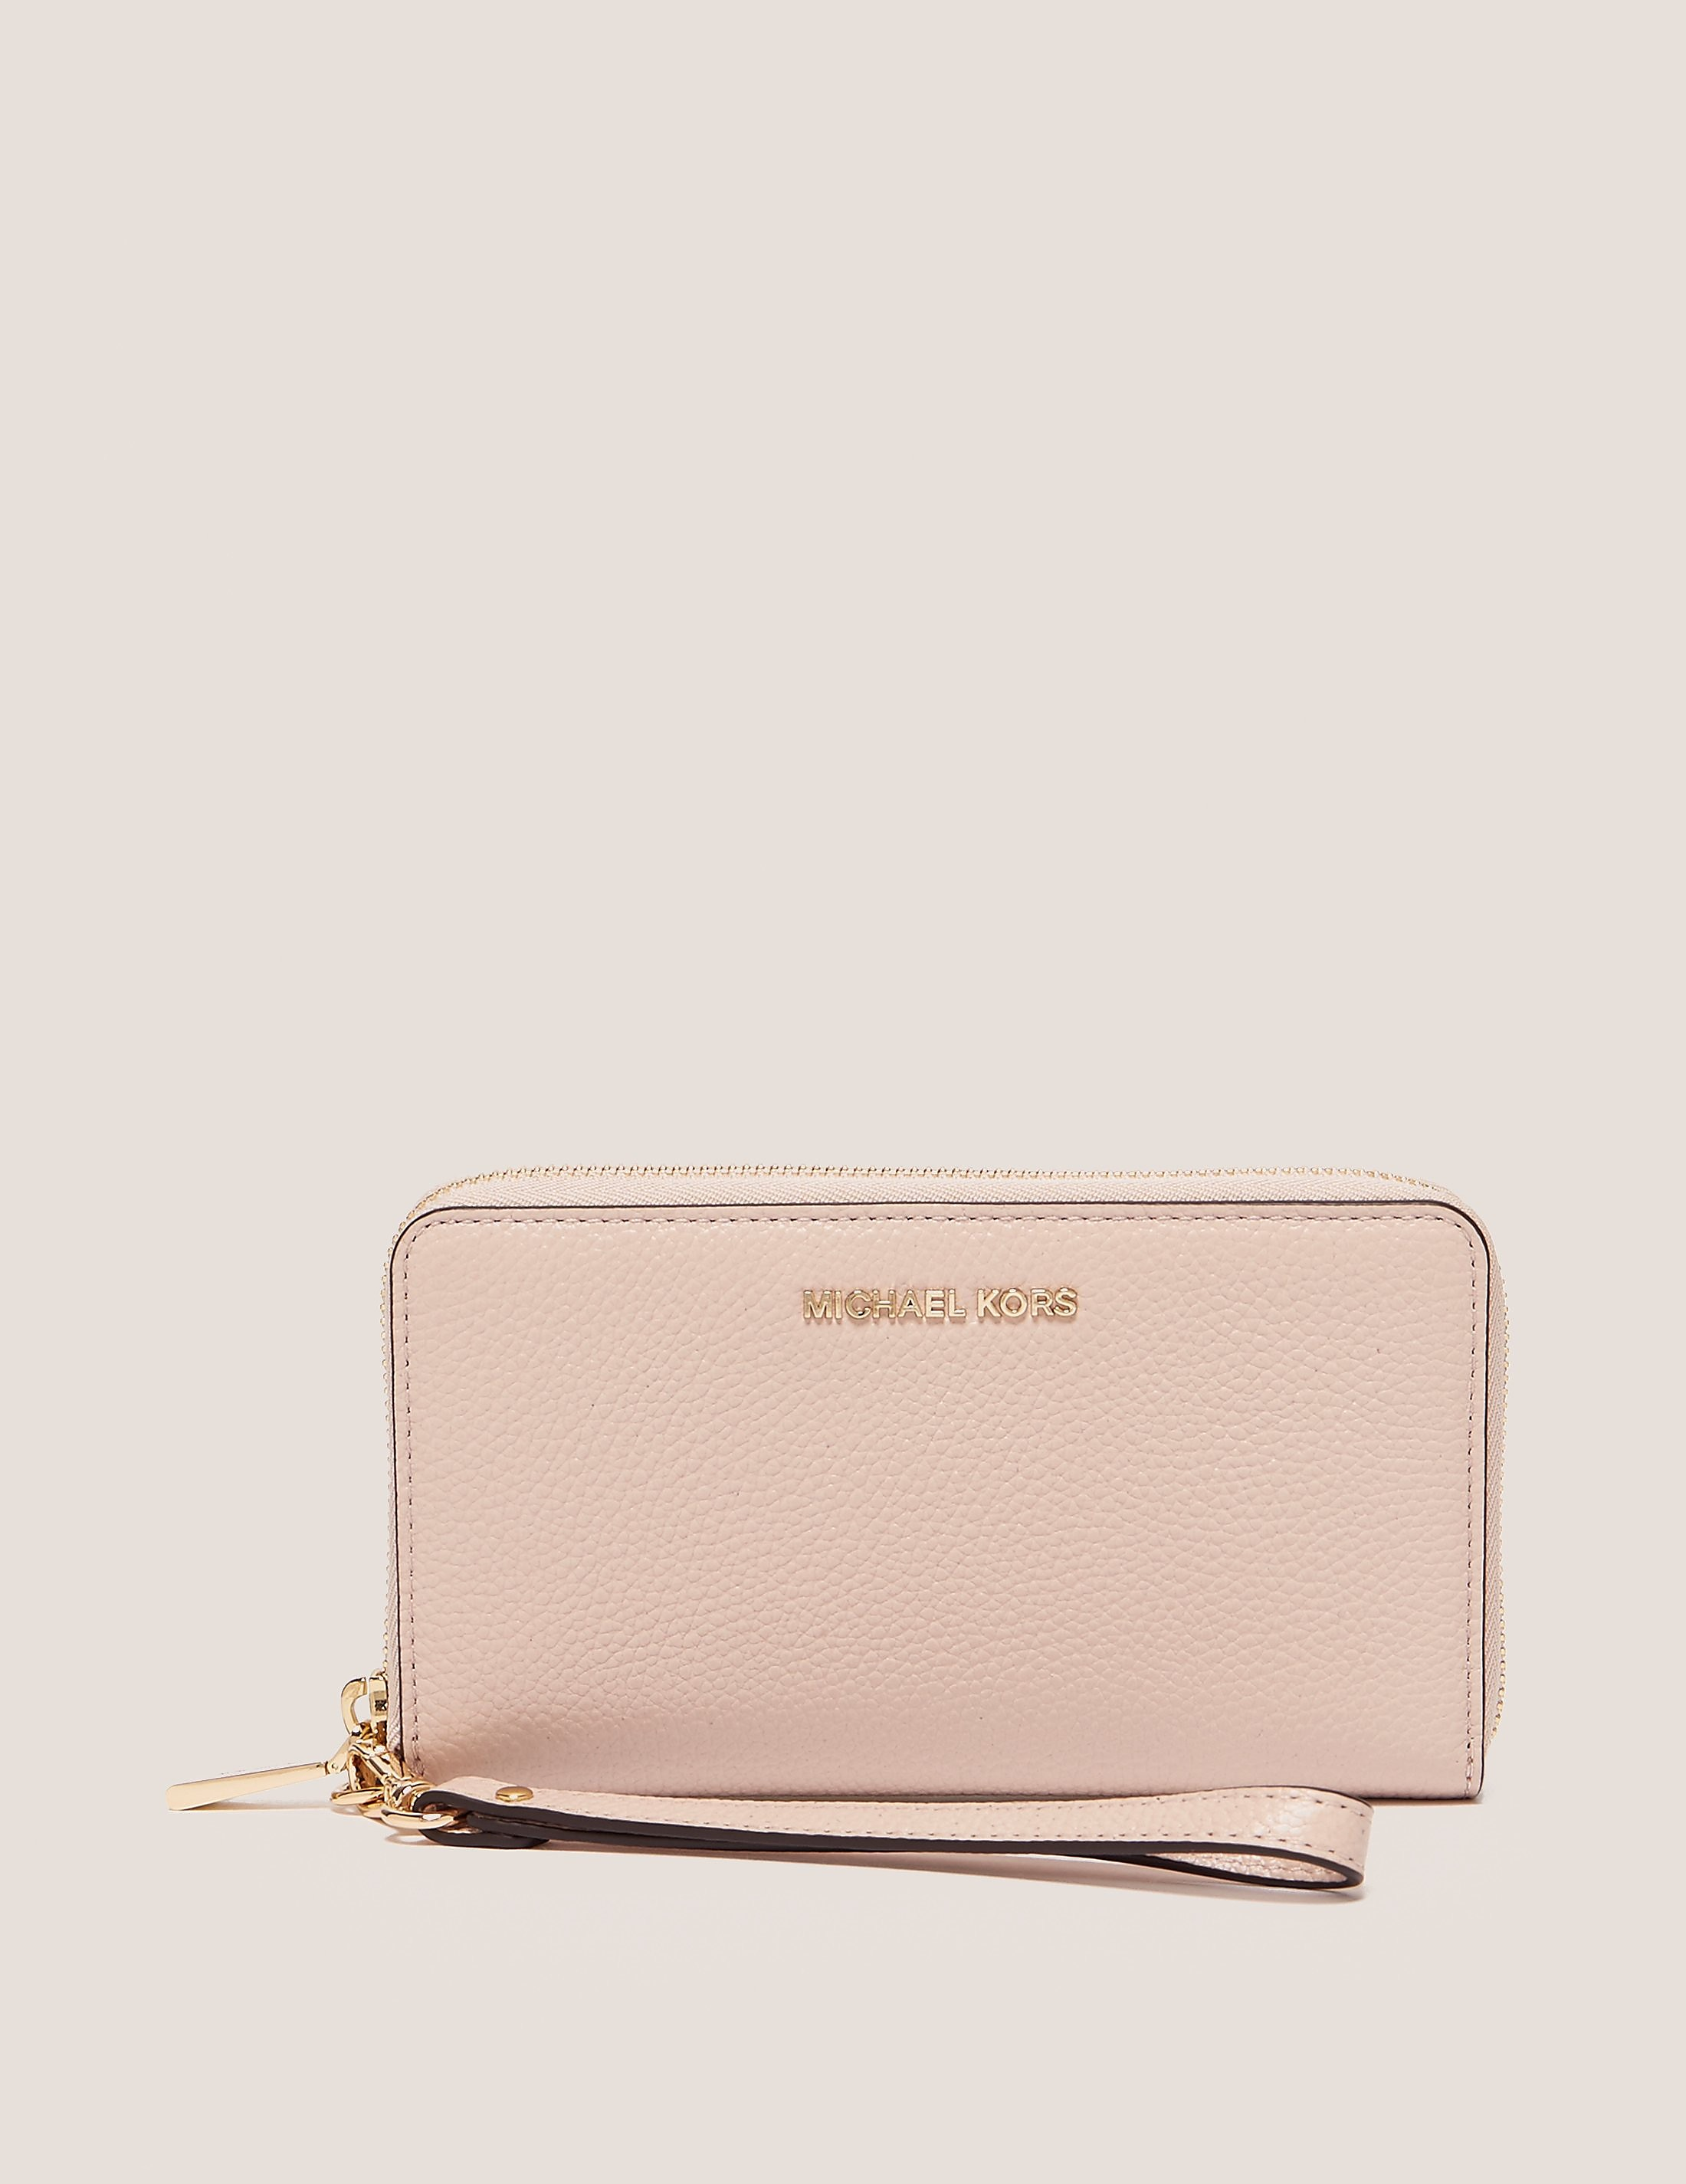 Michael Kors Large Phonecase Wristlet